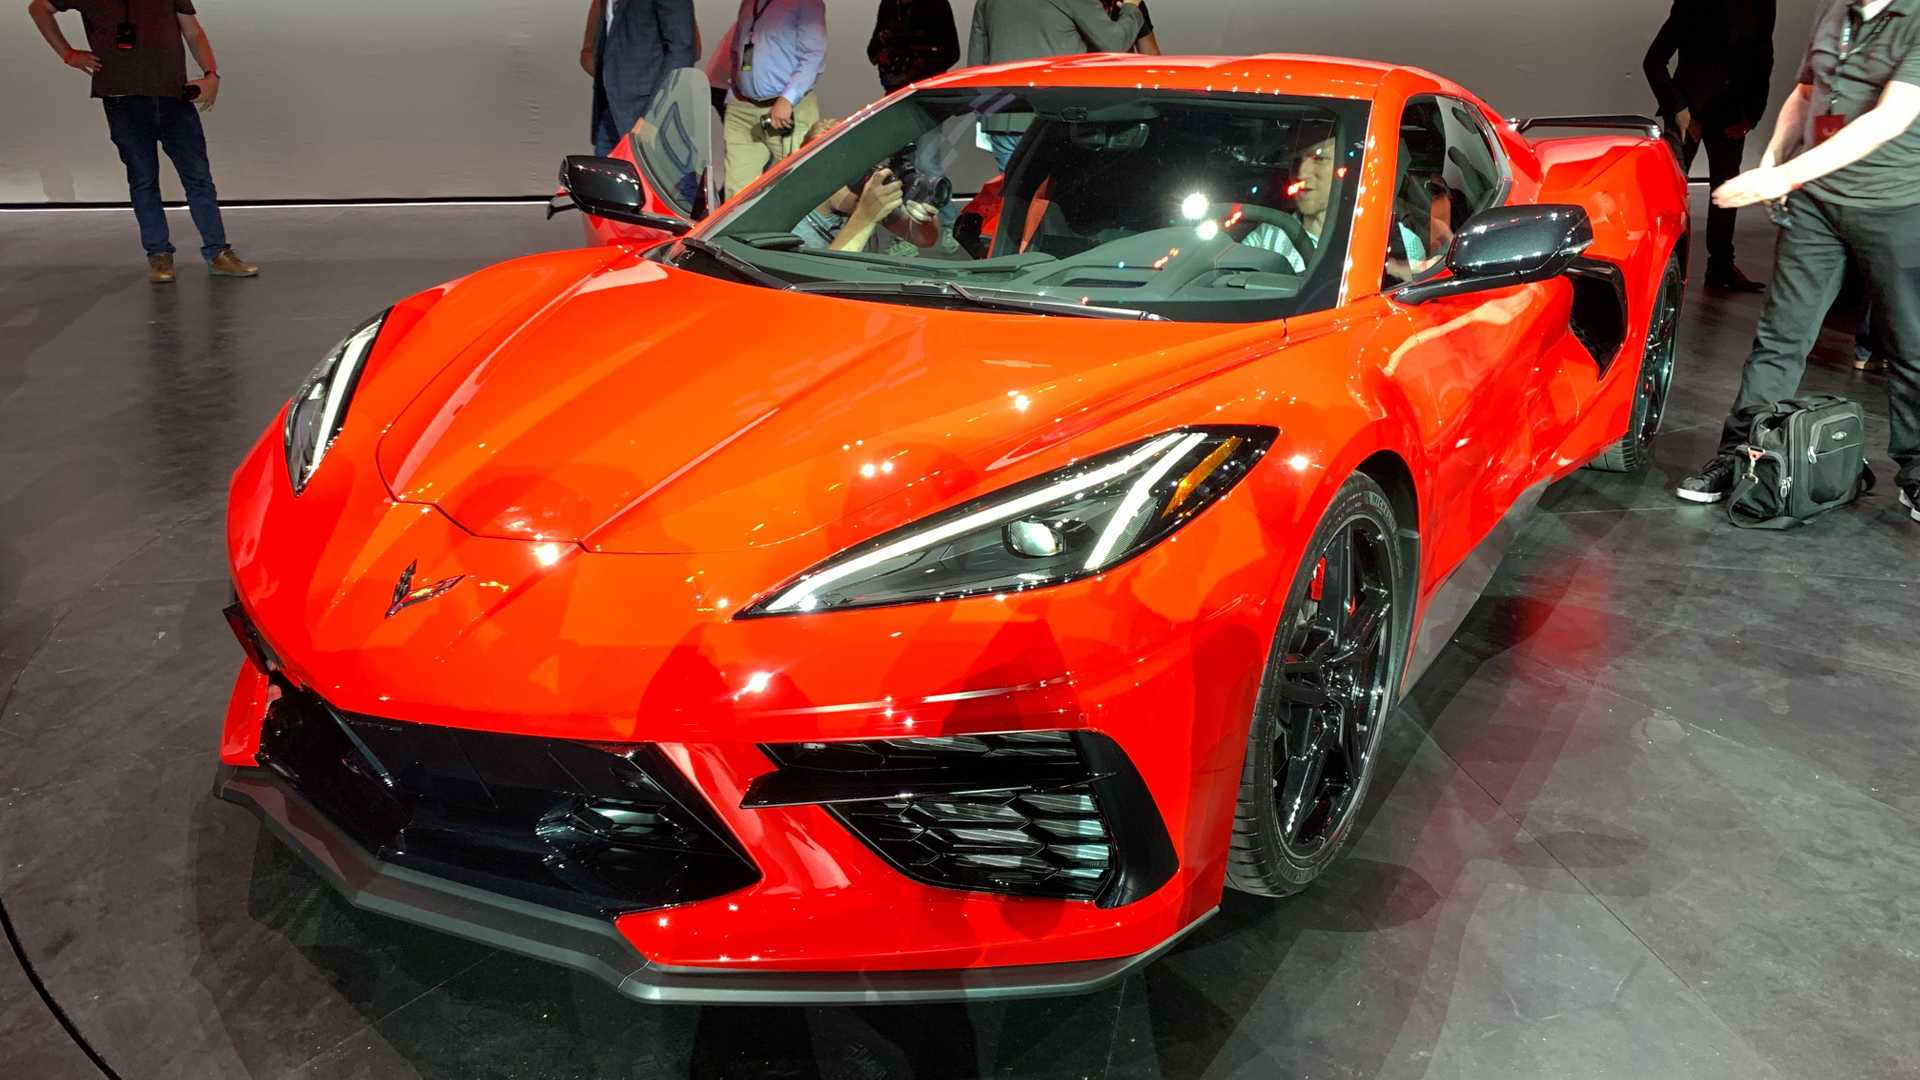 89 All New 2020 Chevrolet Corvette Images Price with 2020 Chevrolet Corvette Images